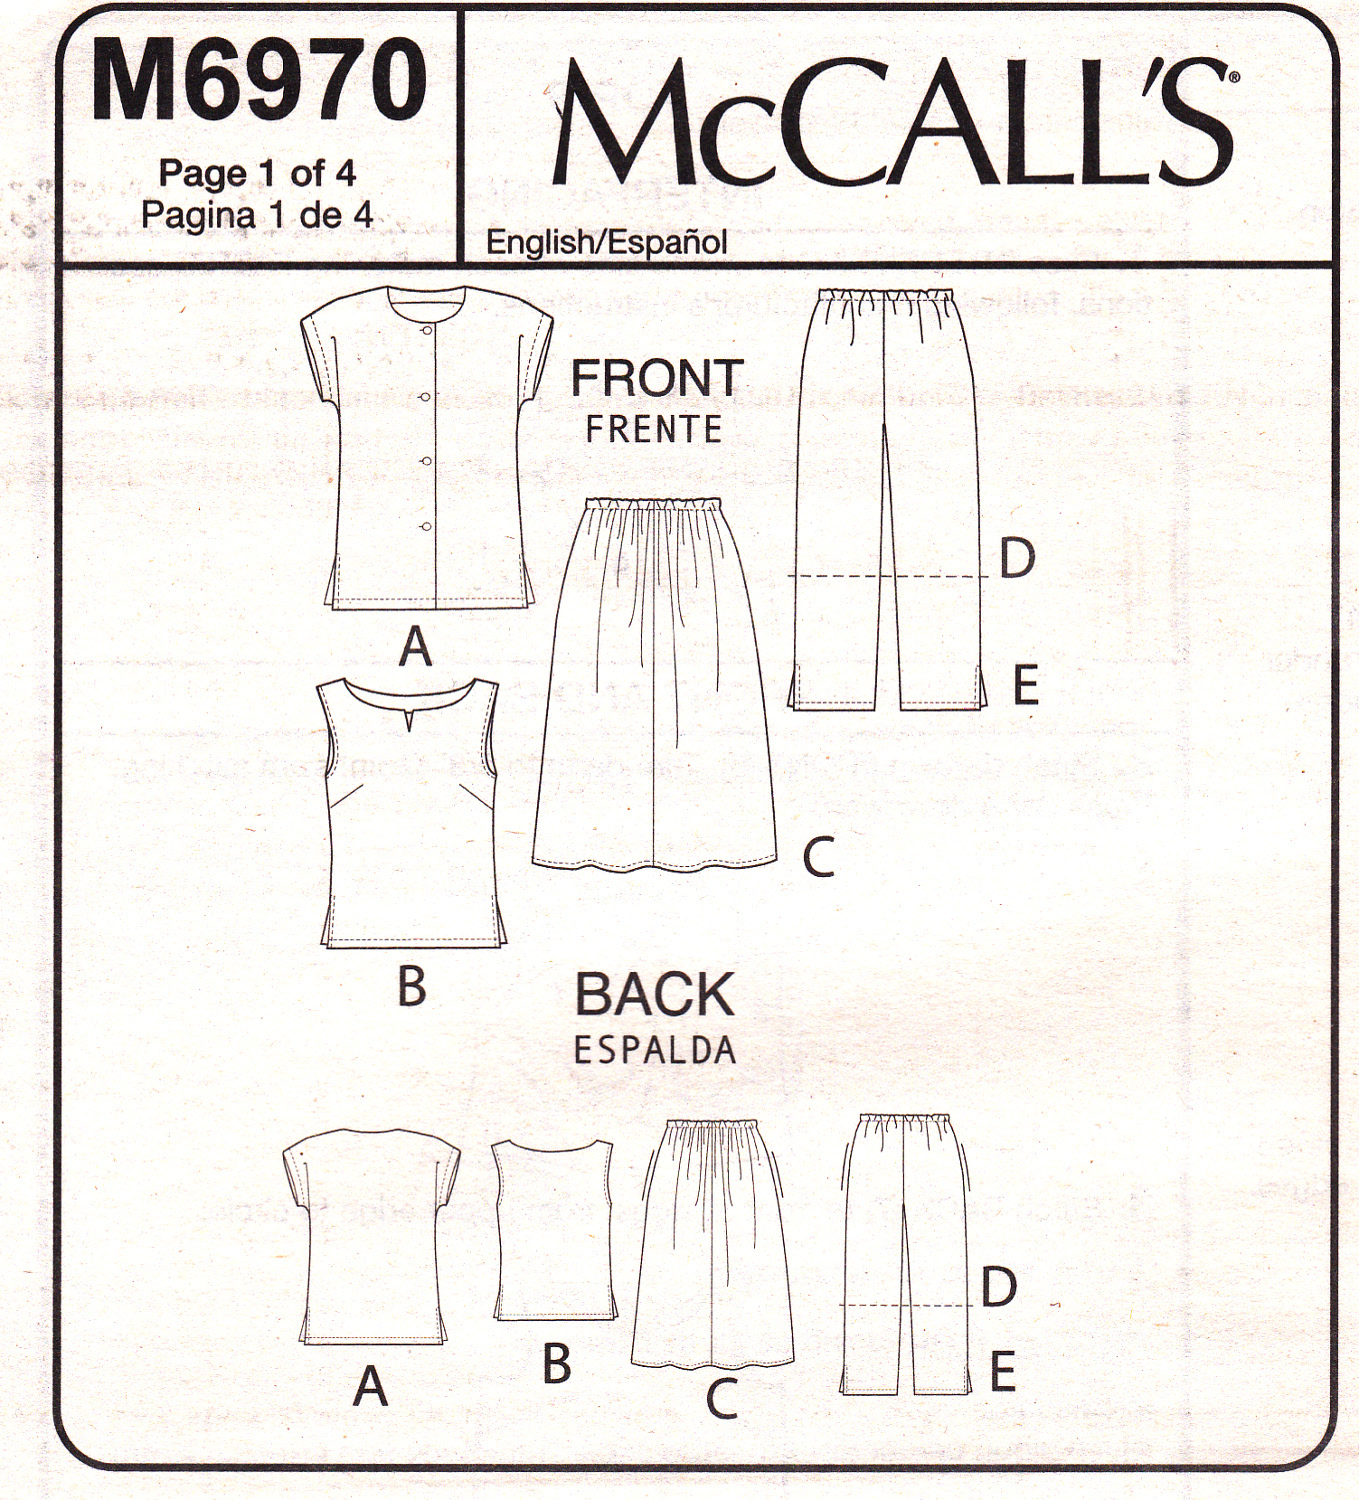 McCall's M6970 Womens Shirt Skirt Top Pants Sewing Pattern Sizes 26W-28W-30W-32W